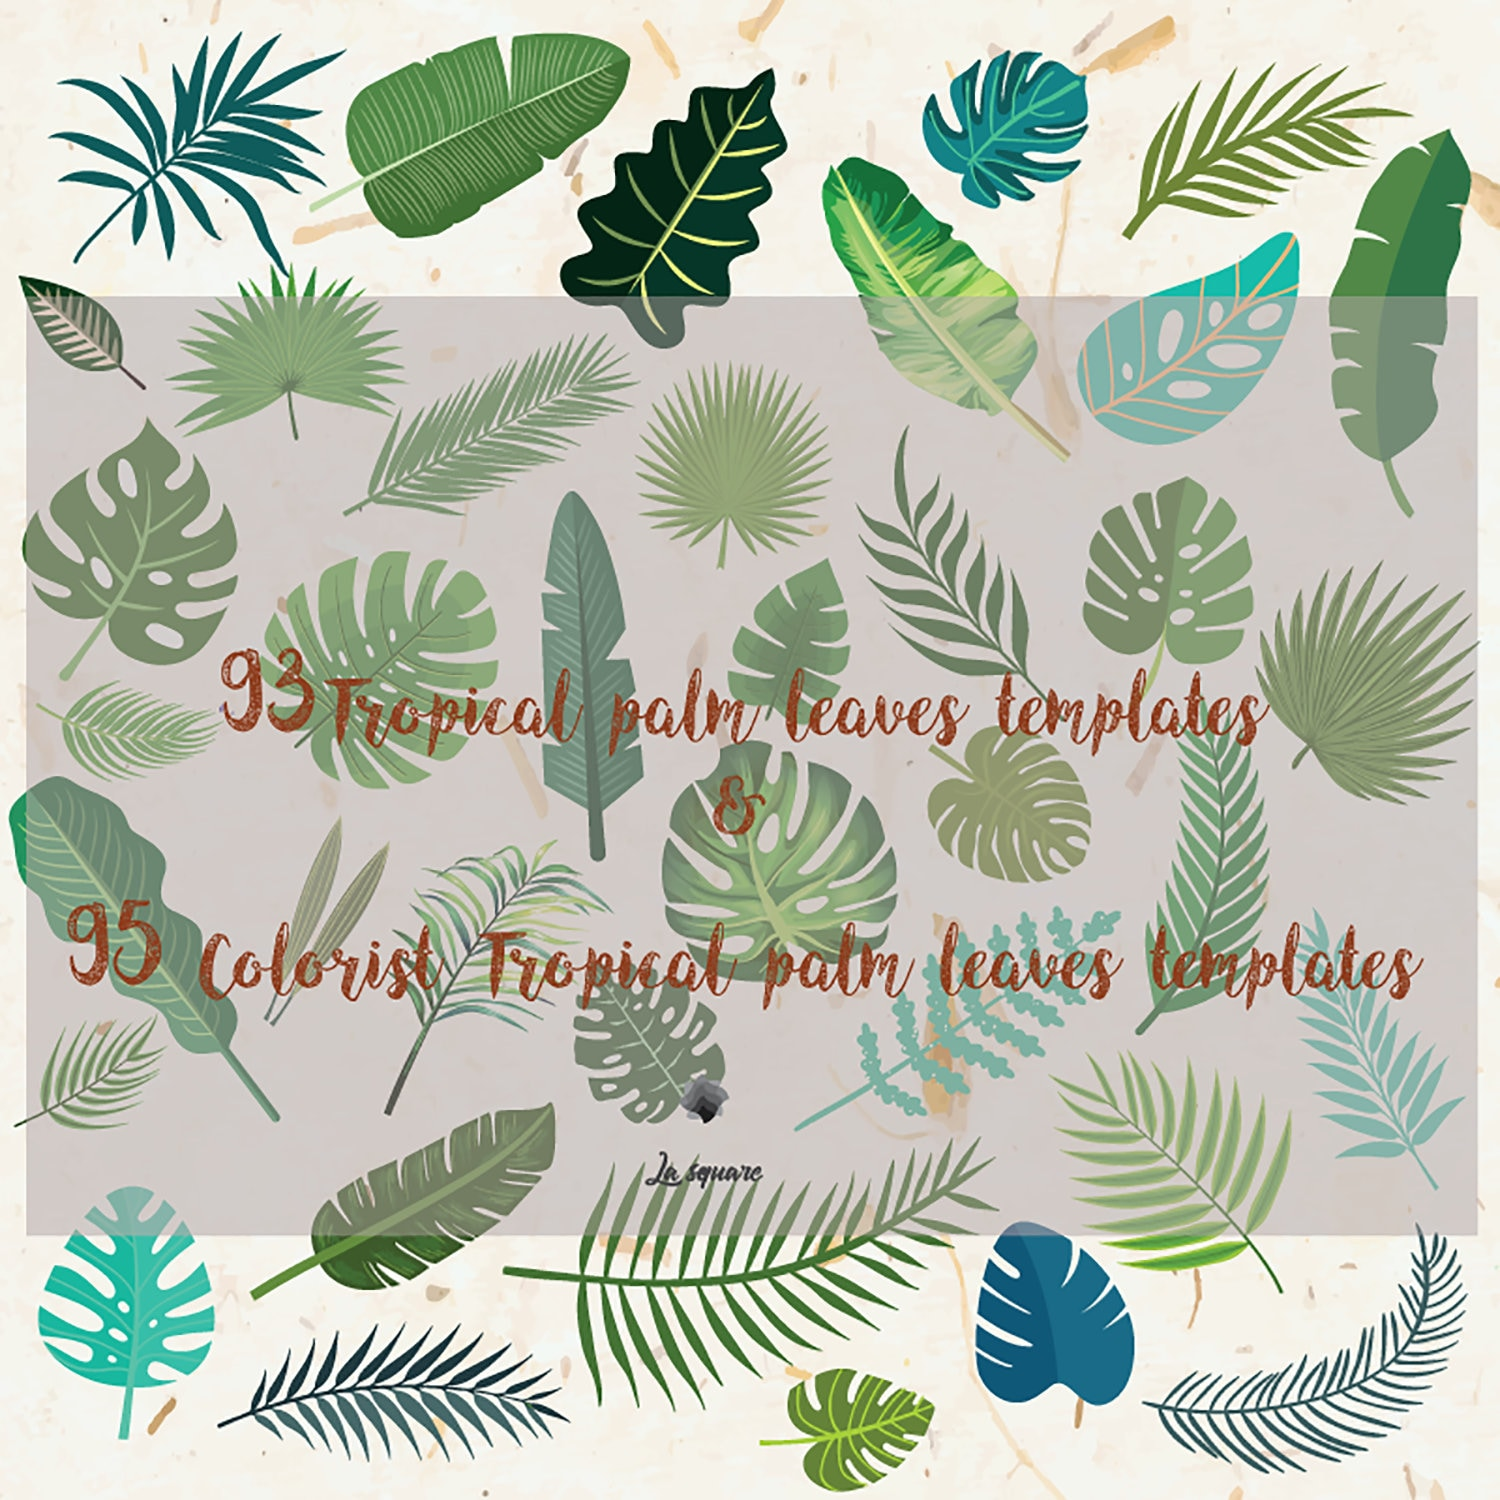 New Svg Dxf Pdf Jpg Png 93 Tropical Palm Leaves Templates Etsy